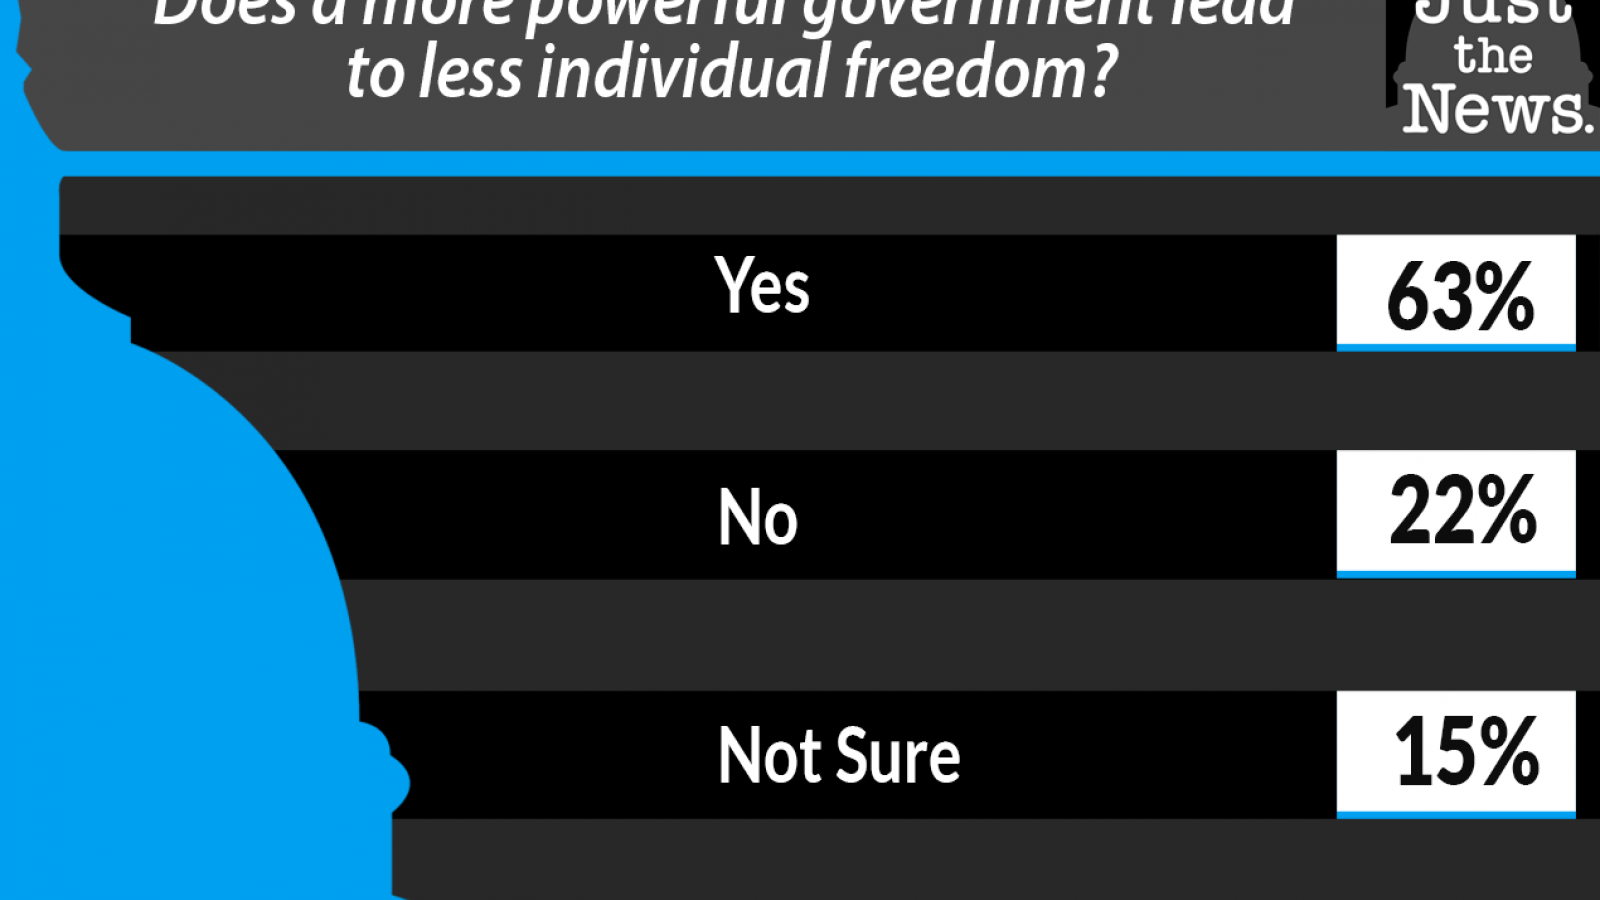 Just the News Daily Poll